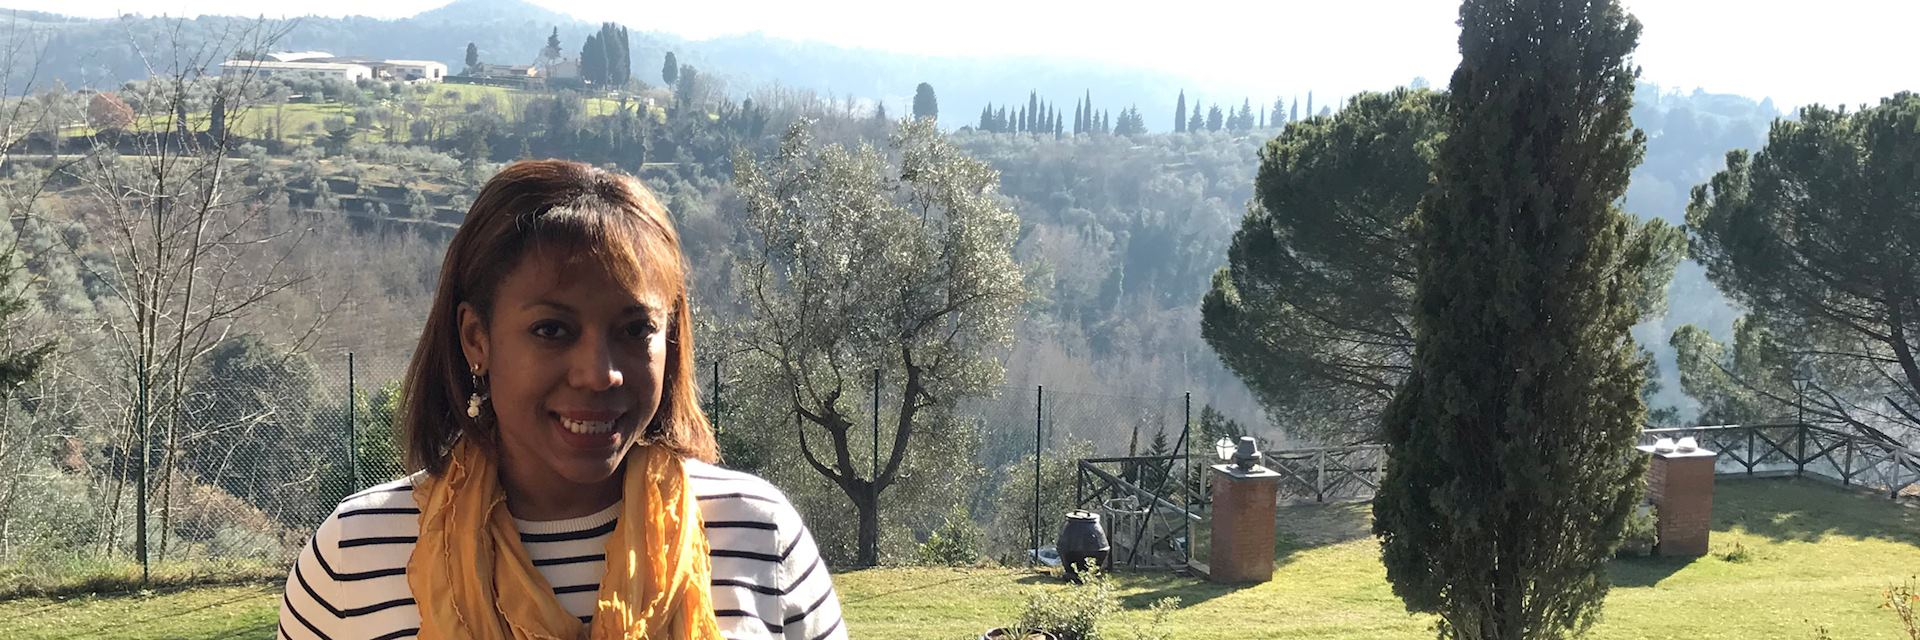 Sofia in a Tuscan vineyard, Italy